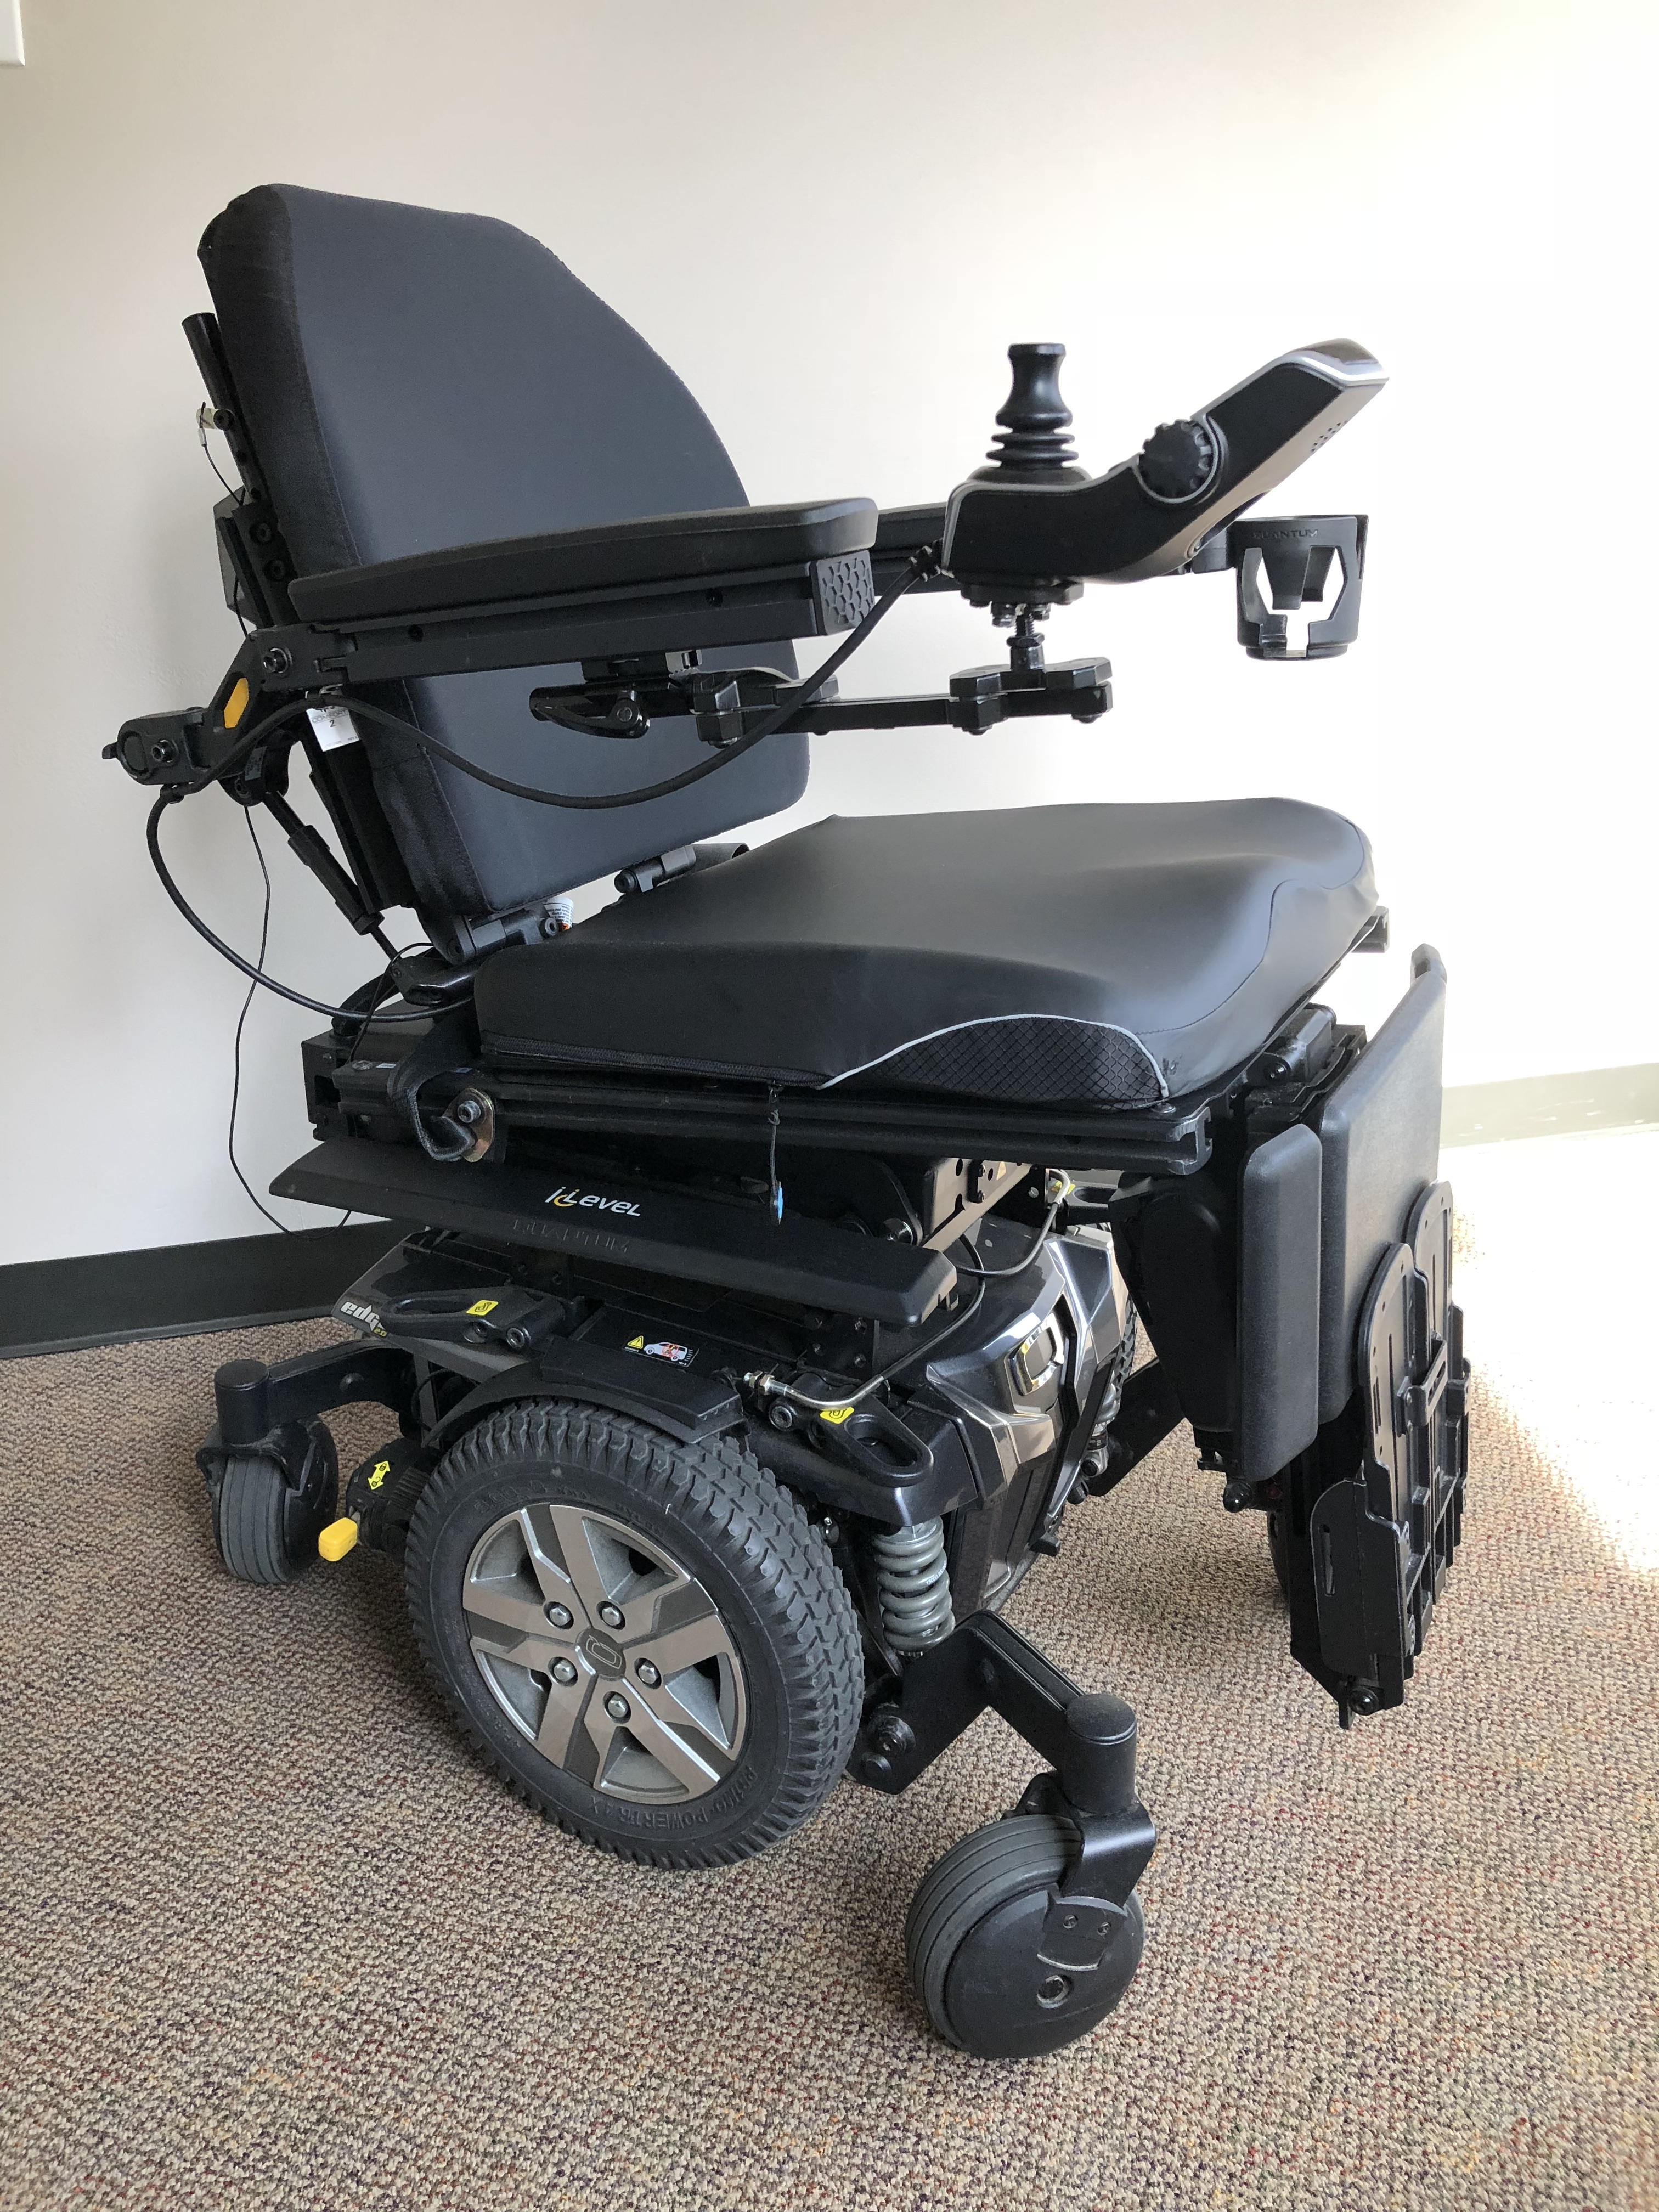 Remarkable Quantum Q6 Edge 2 0 Ilevel Power Chair With 10 Lift Buy Home Interior And Landscaping Ologienasavecom